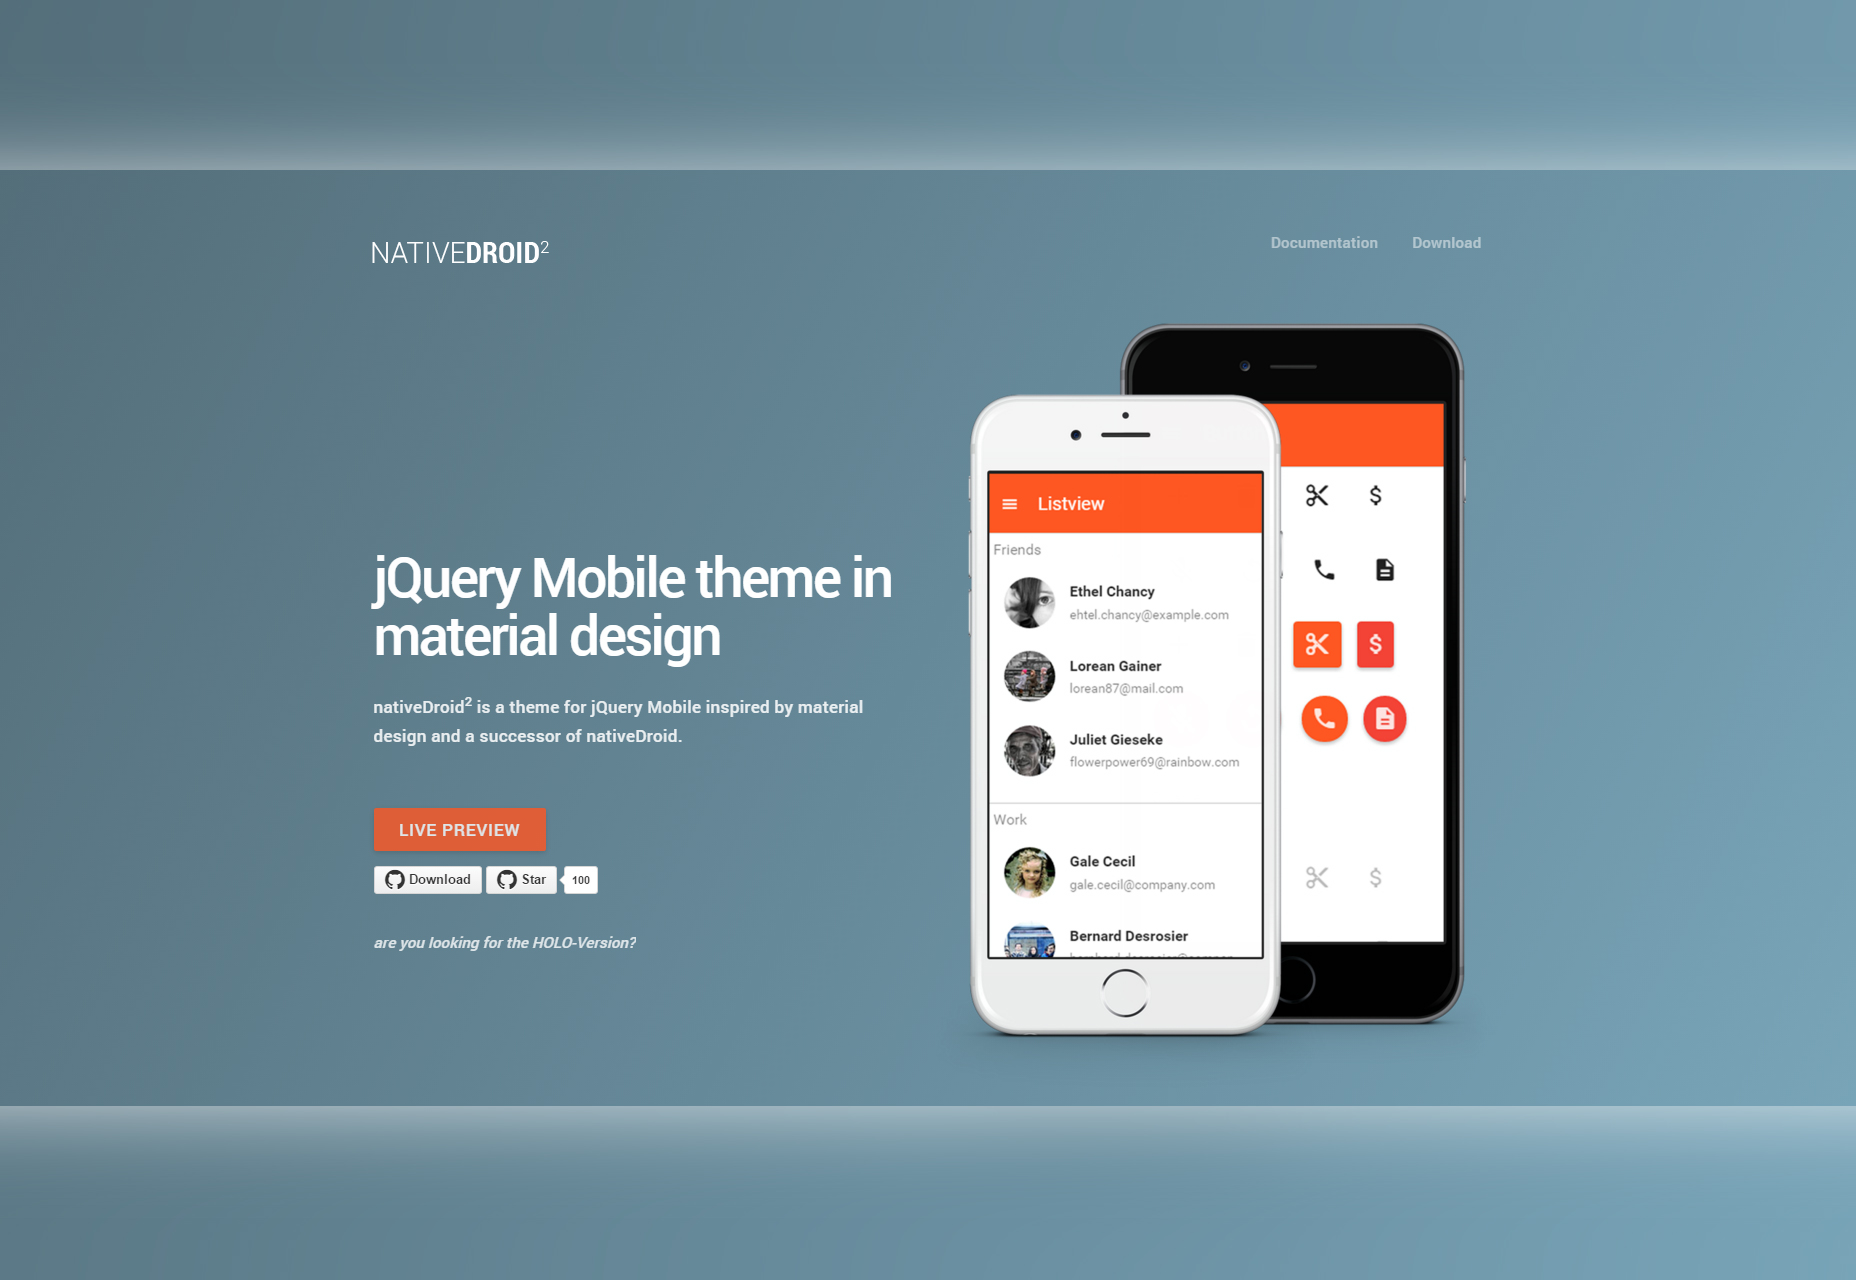 nativedroid2-material-design-theme-for-jquery-mobile